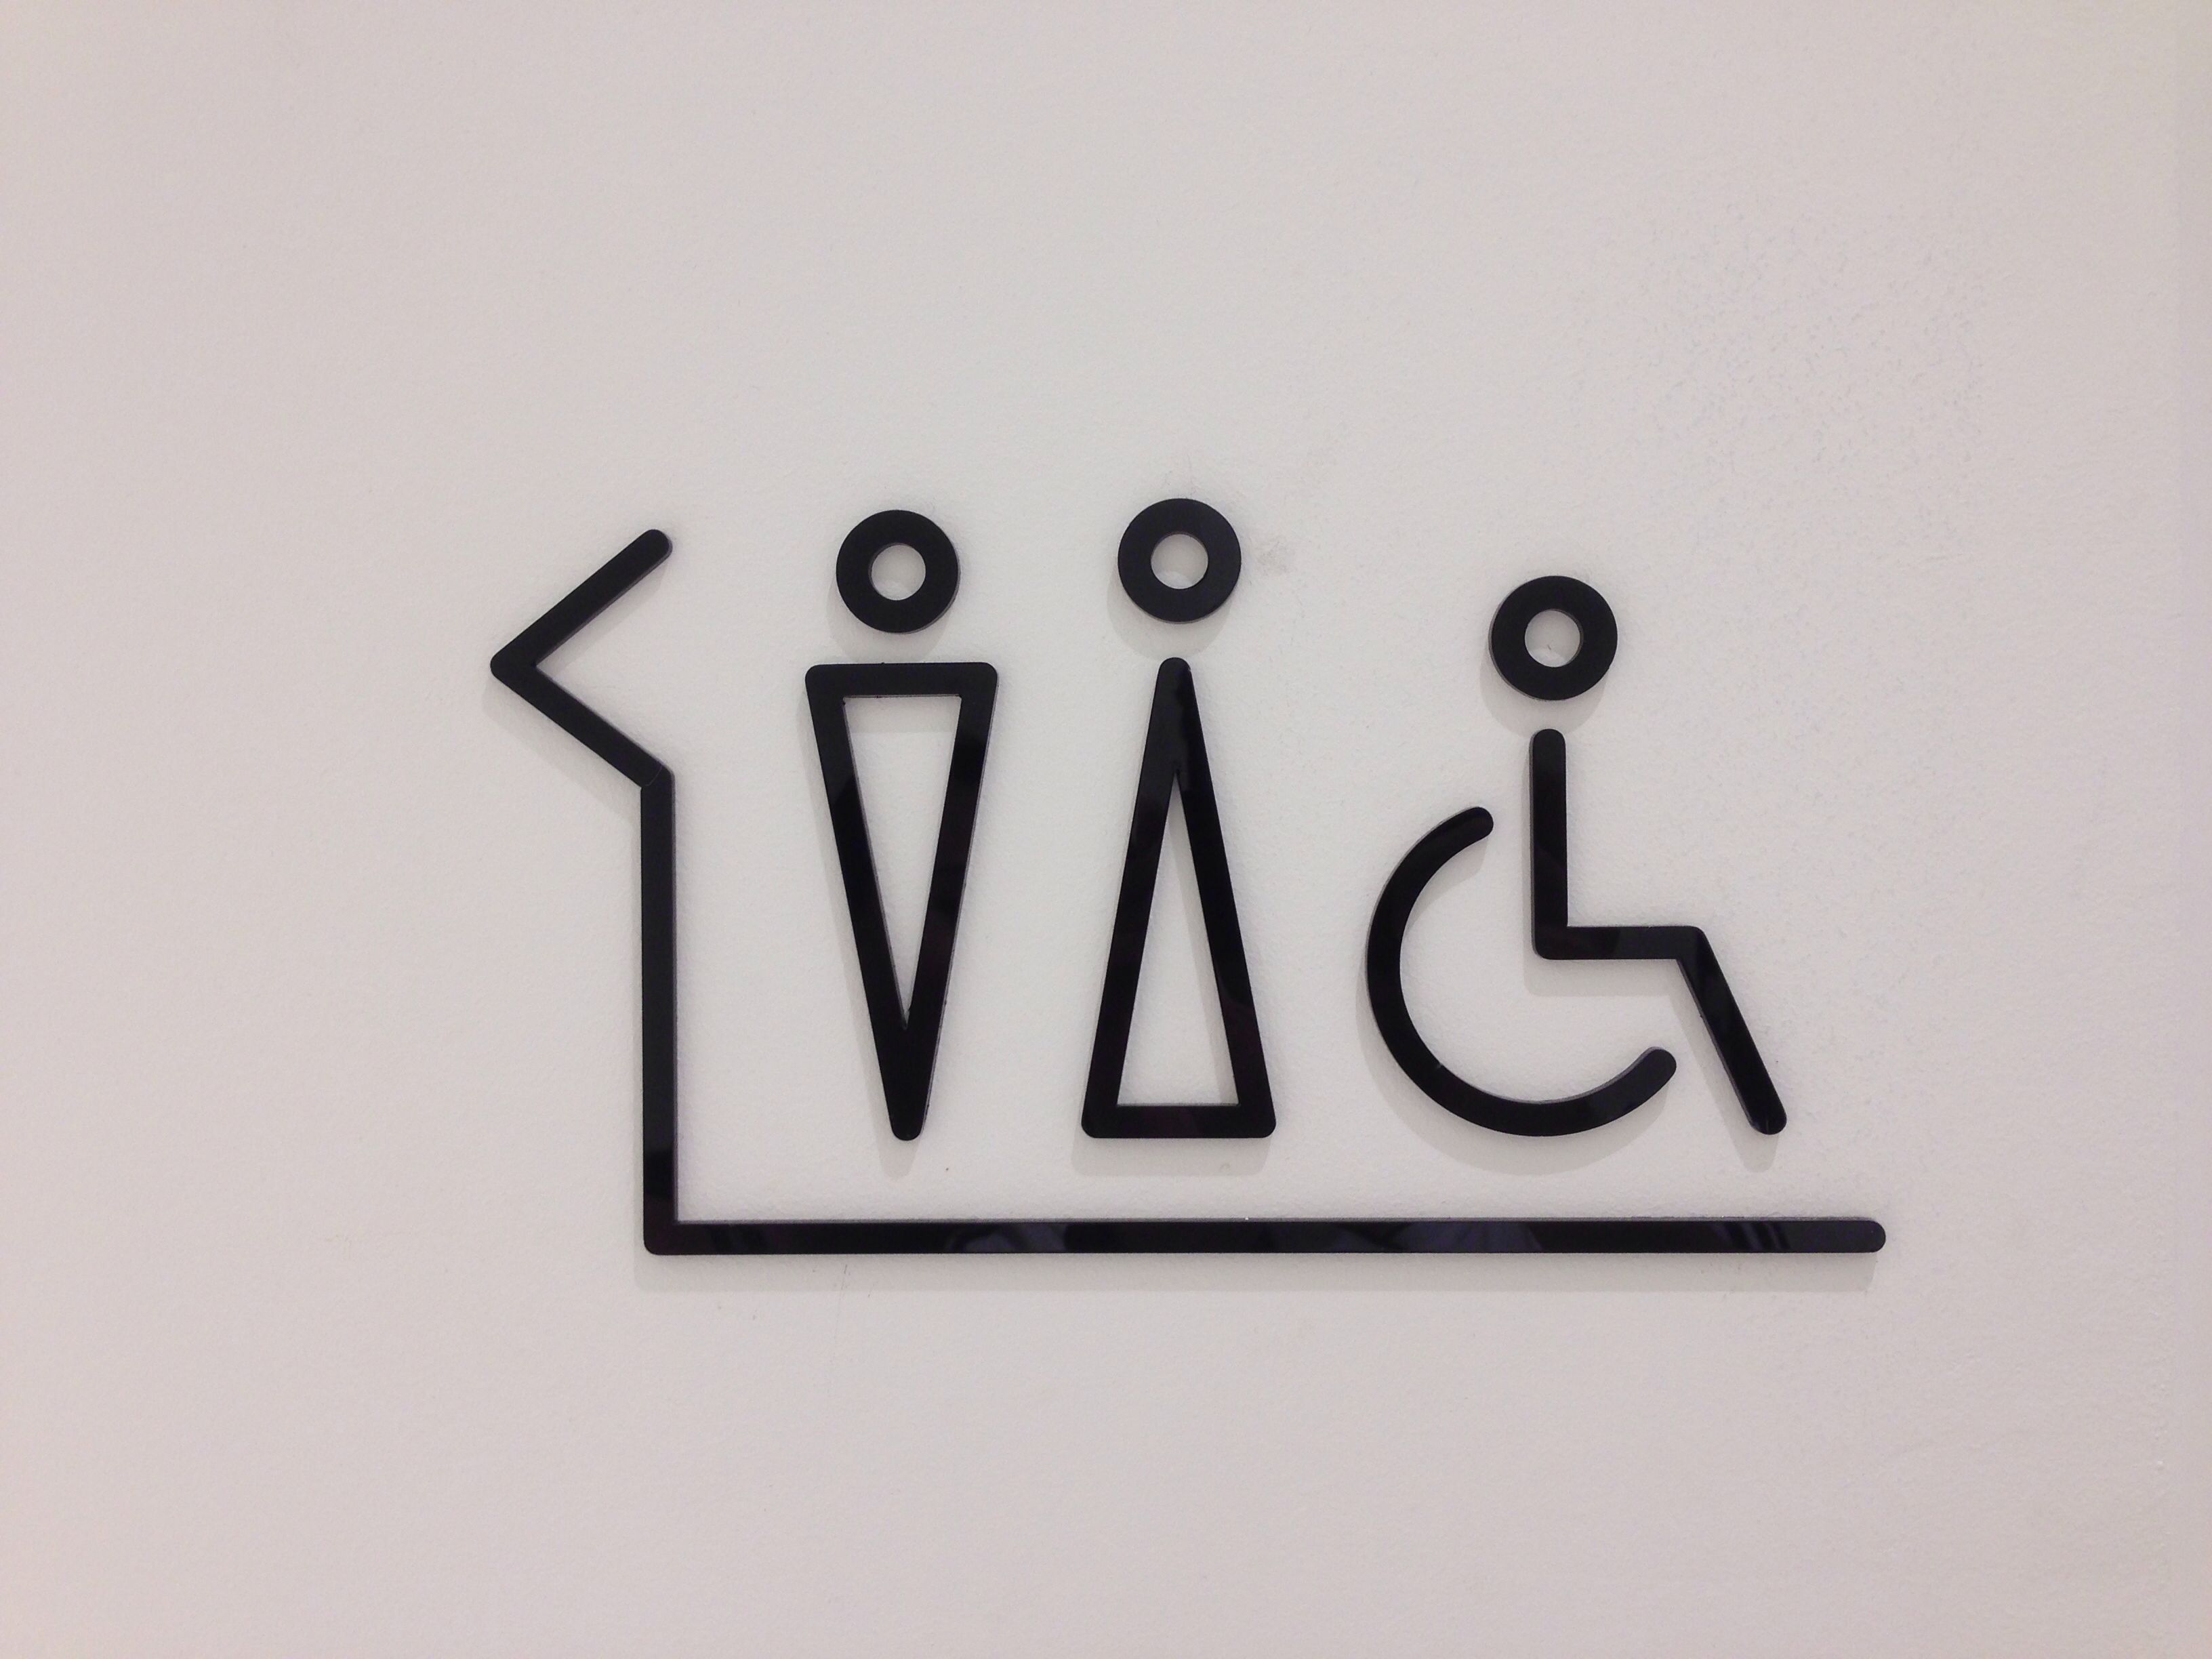 Toilet Sign Signage Environmental Pinterest Toilet